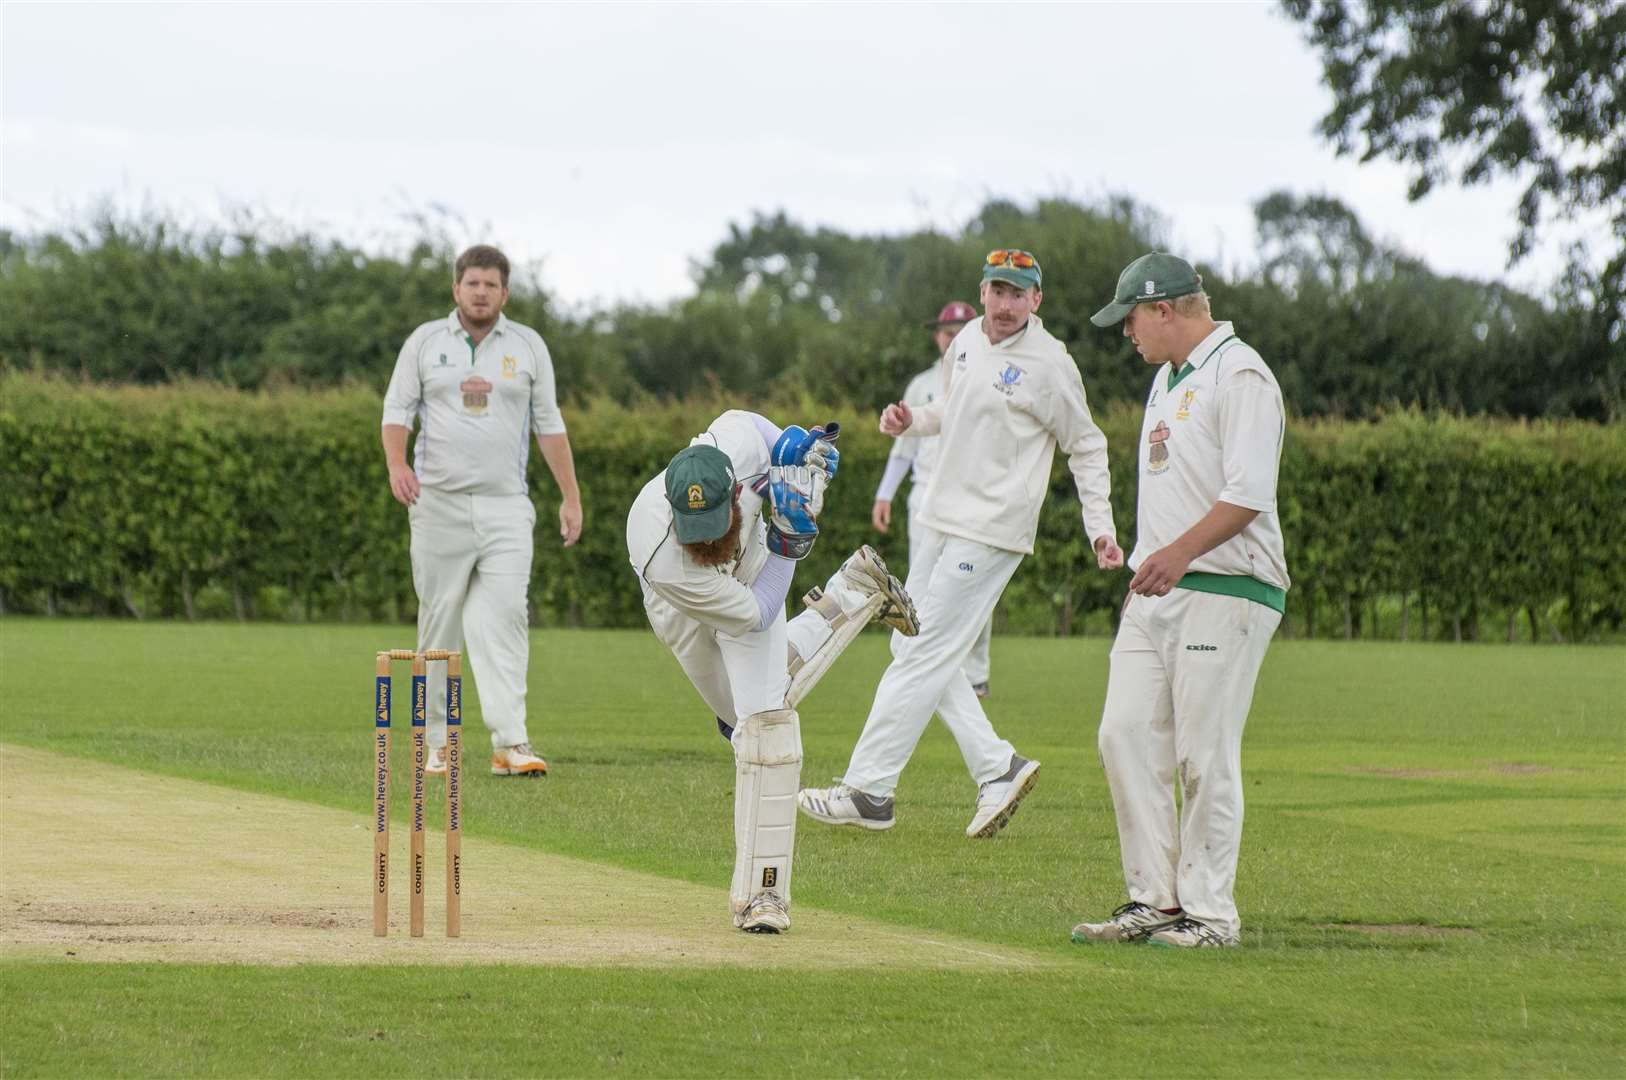 Uppingham were defeated by Ufford Park in Sunday's Division Two tussle. Photo: Lee Hellwing (15494195)